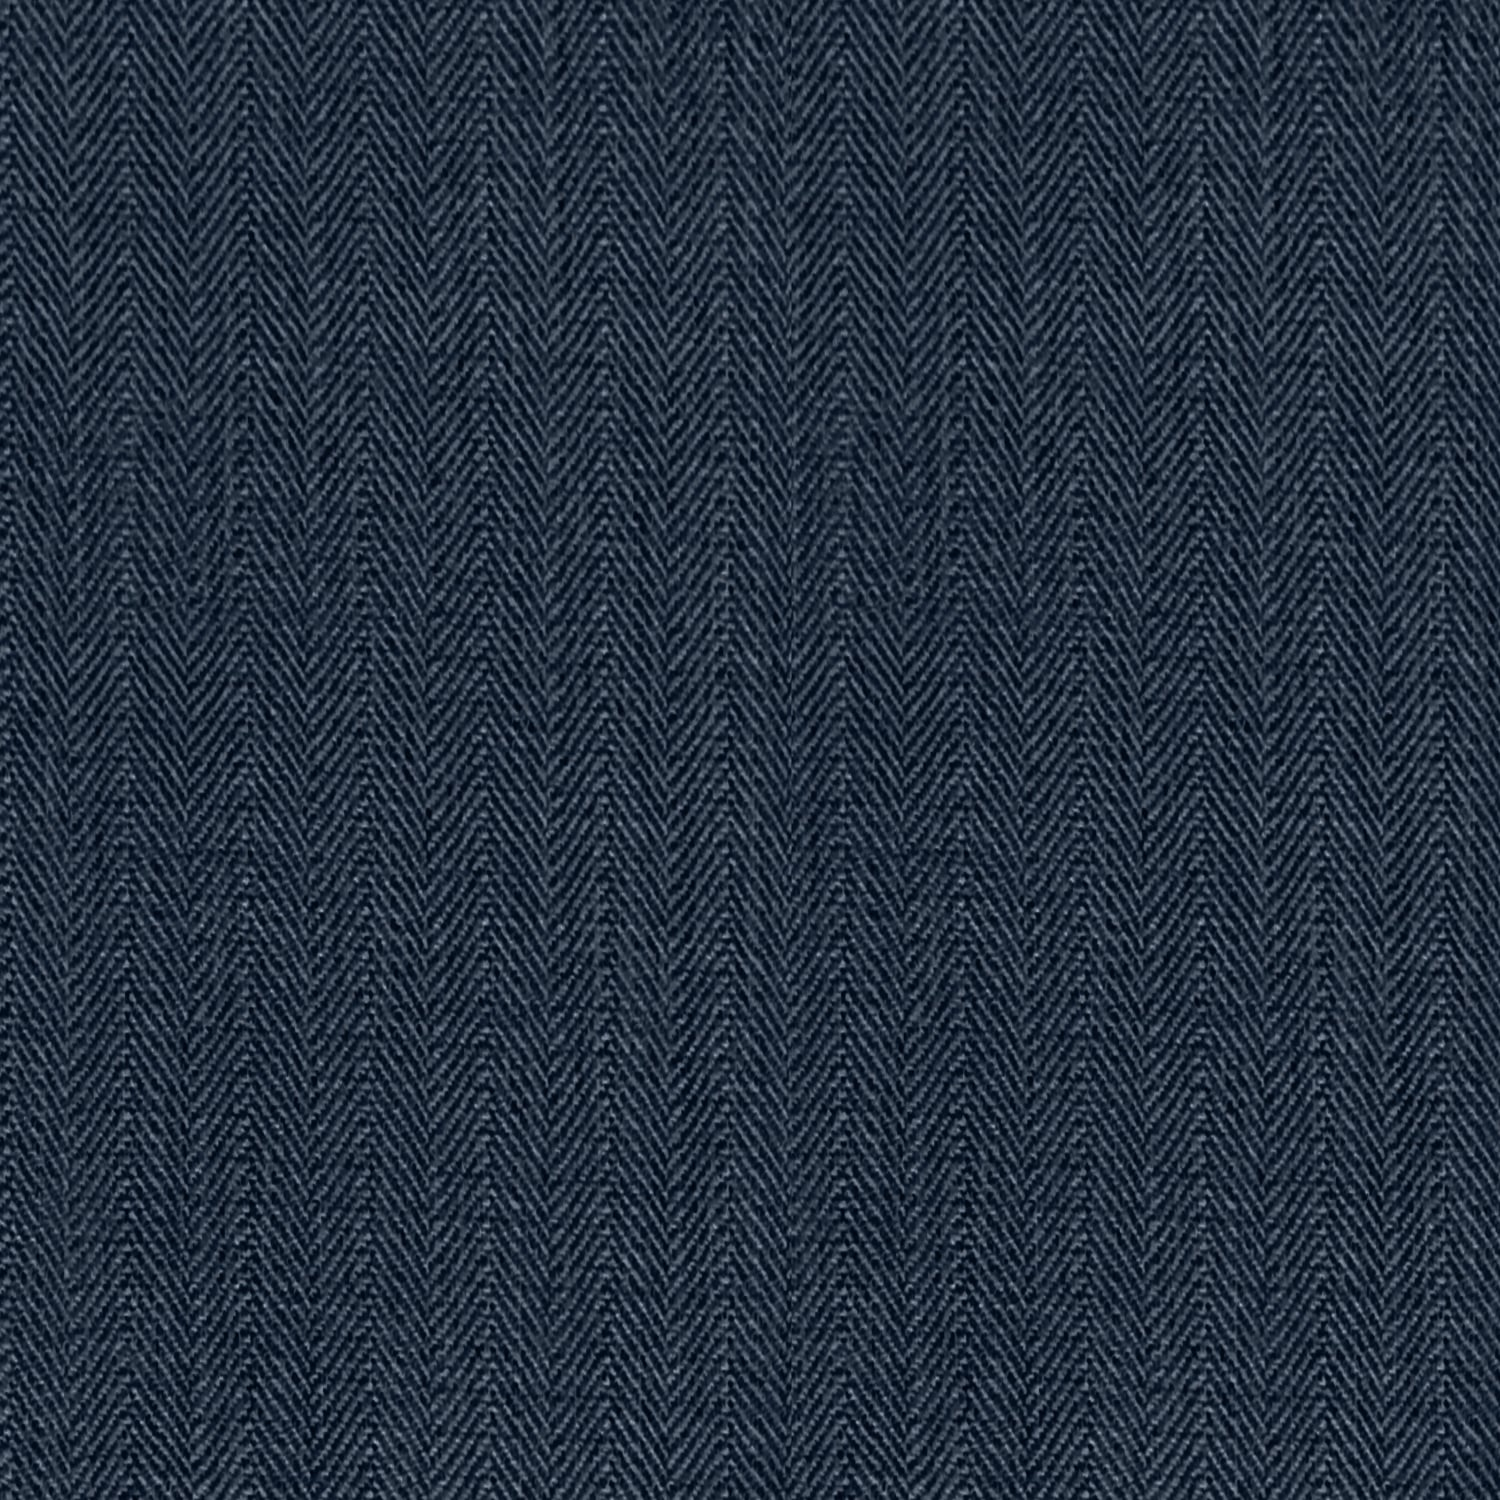 Sunbrella: Boss Tweed Indigo (grade 3): #BOS10116<br>Extreme durability; cleans with water; no sun discoloration